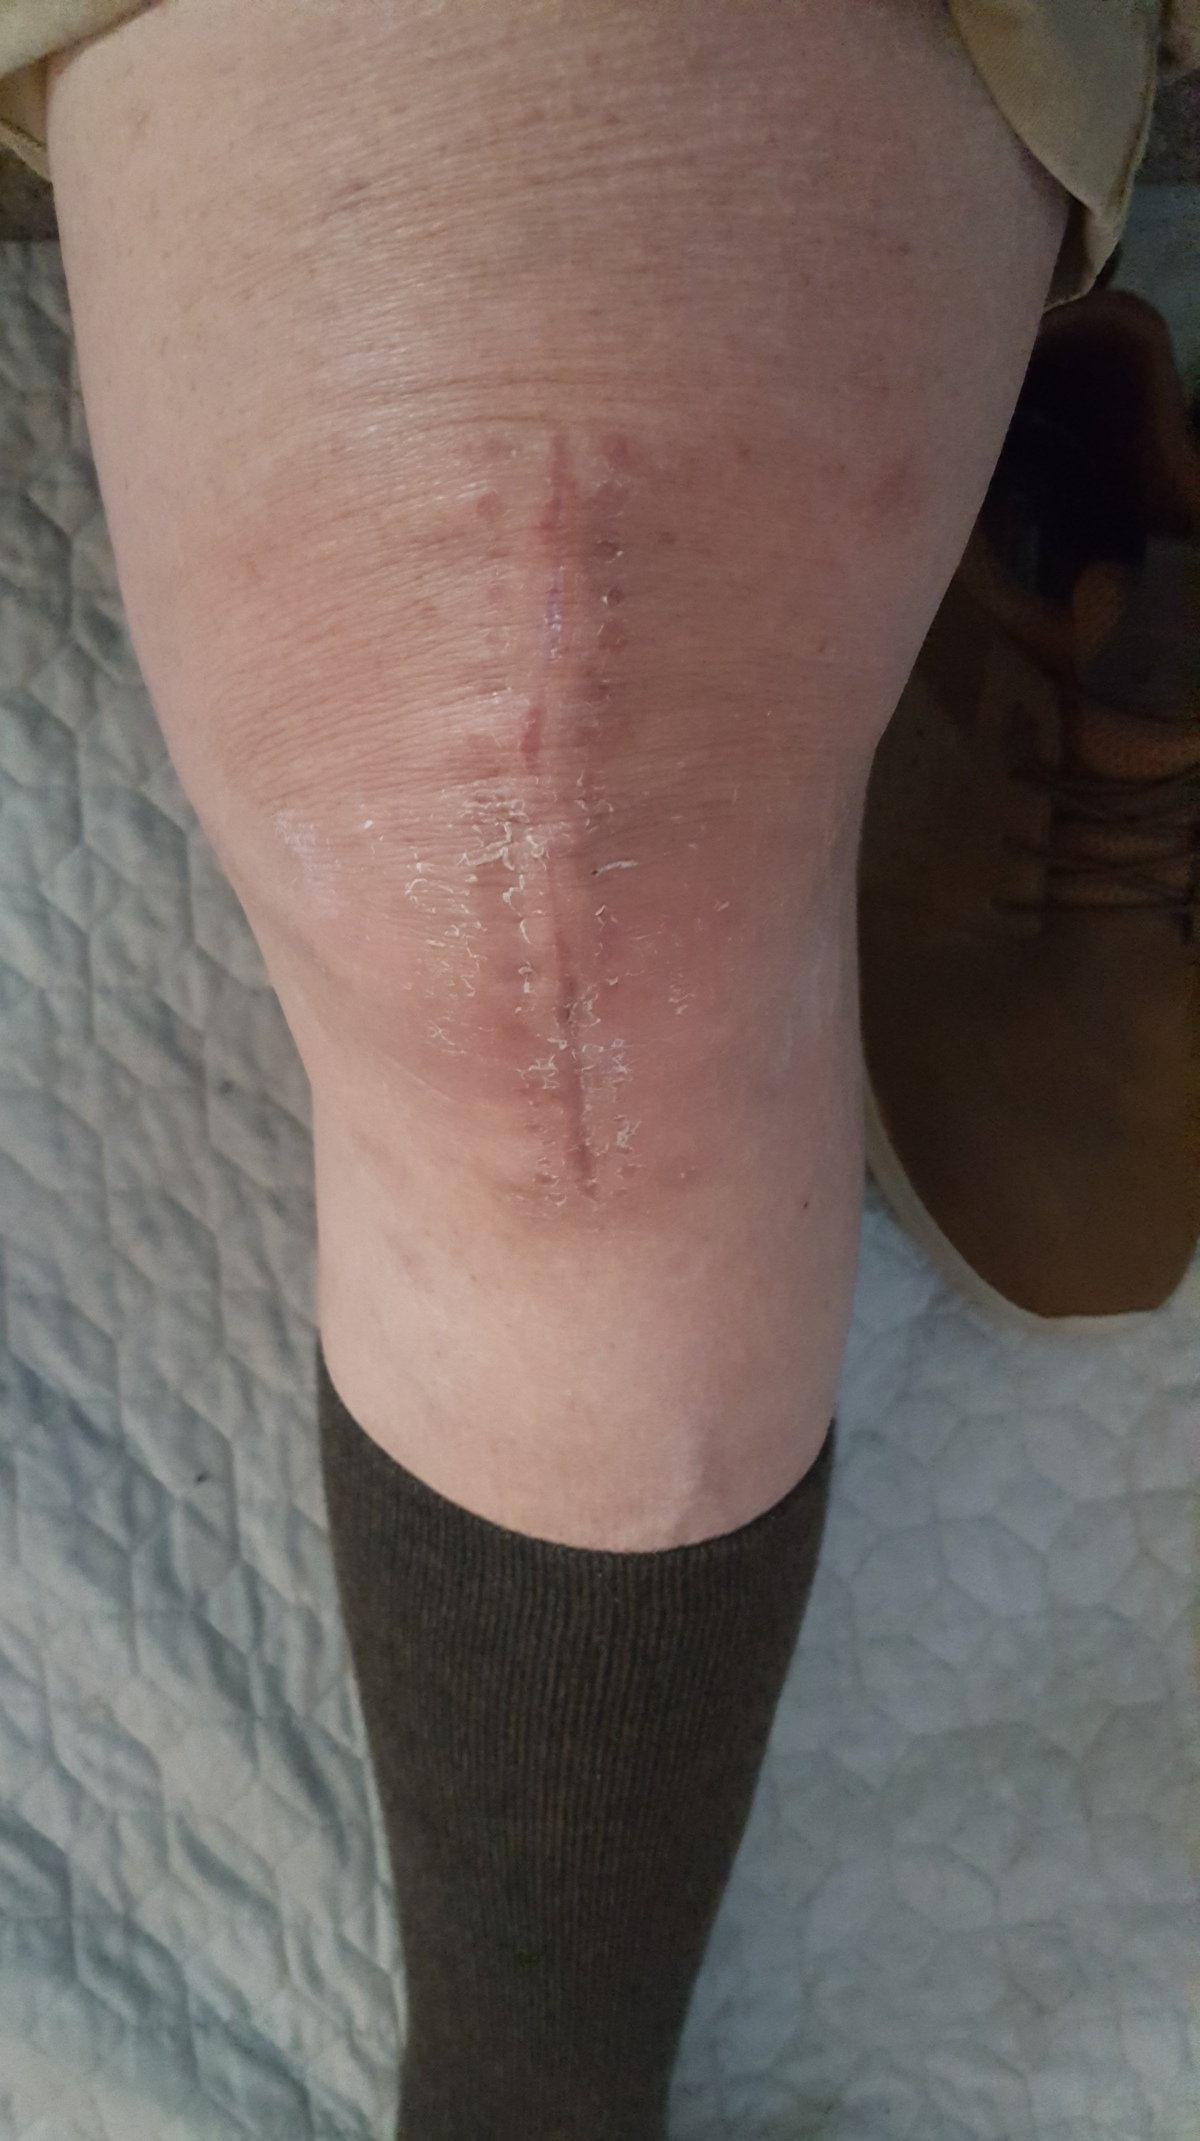 UPDATE: Kneecap Healing, If Not Quite Fast Enough For YoursTruly